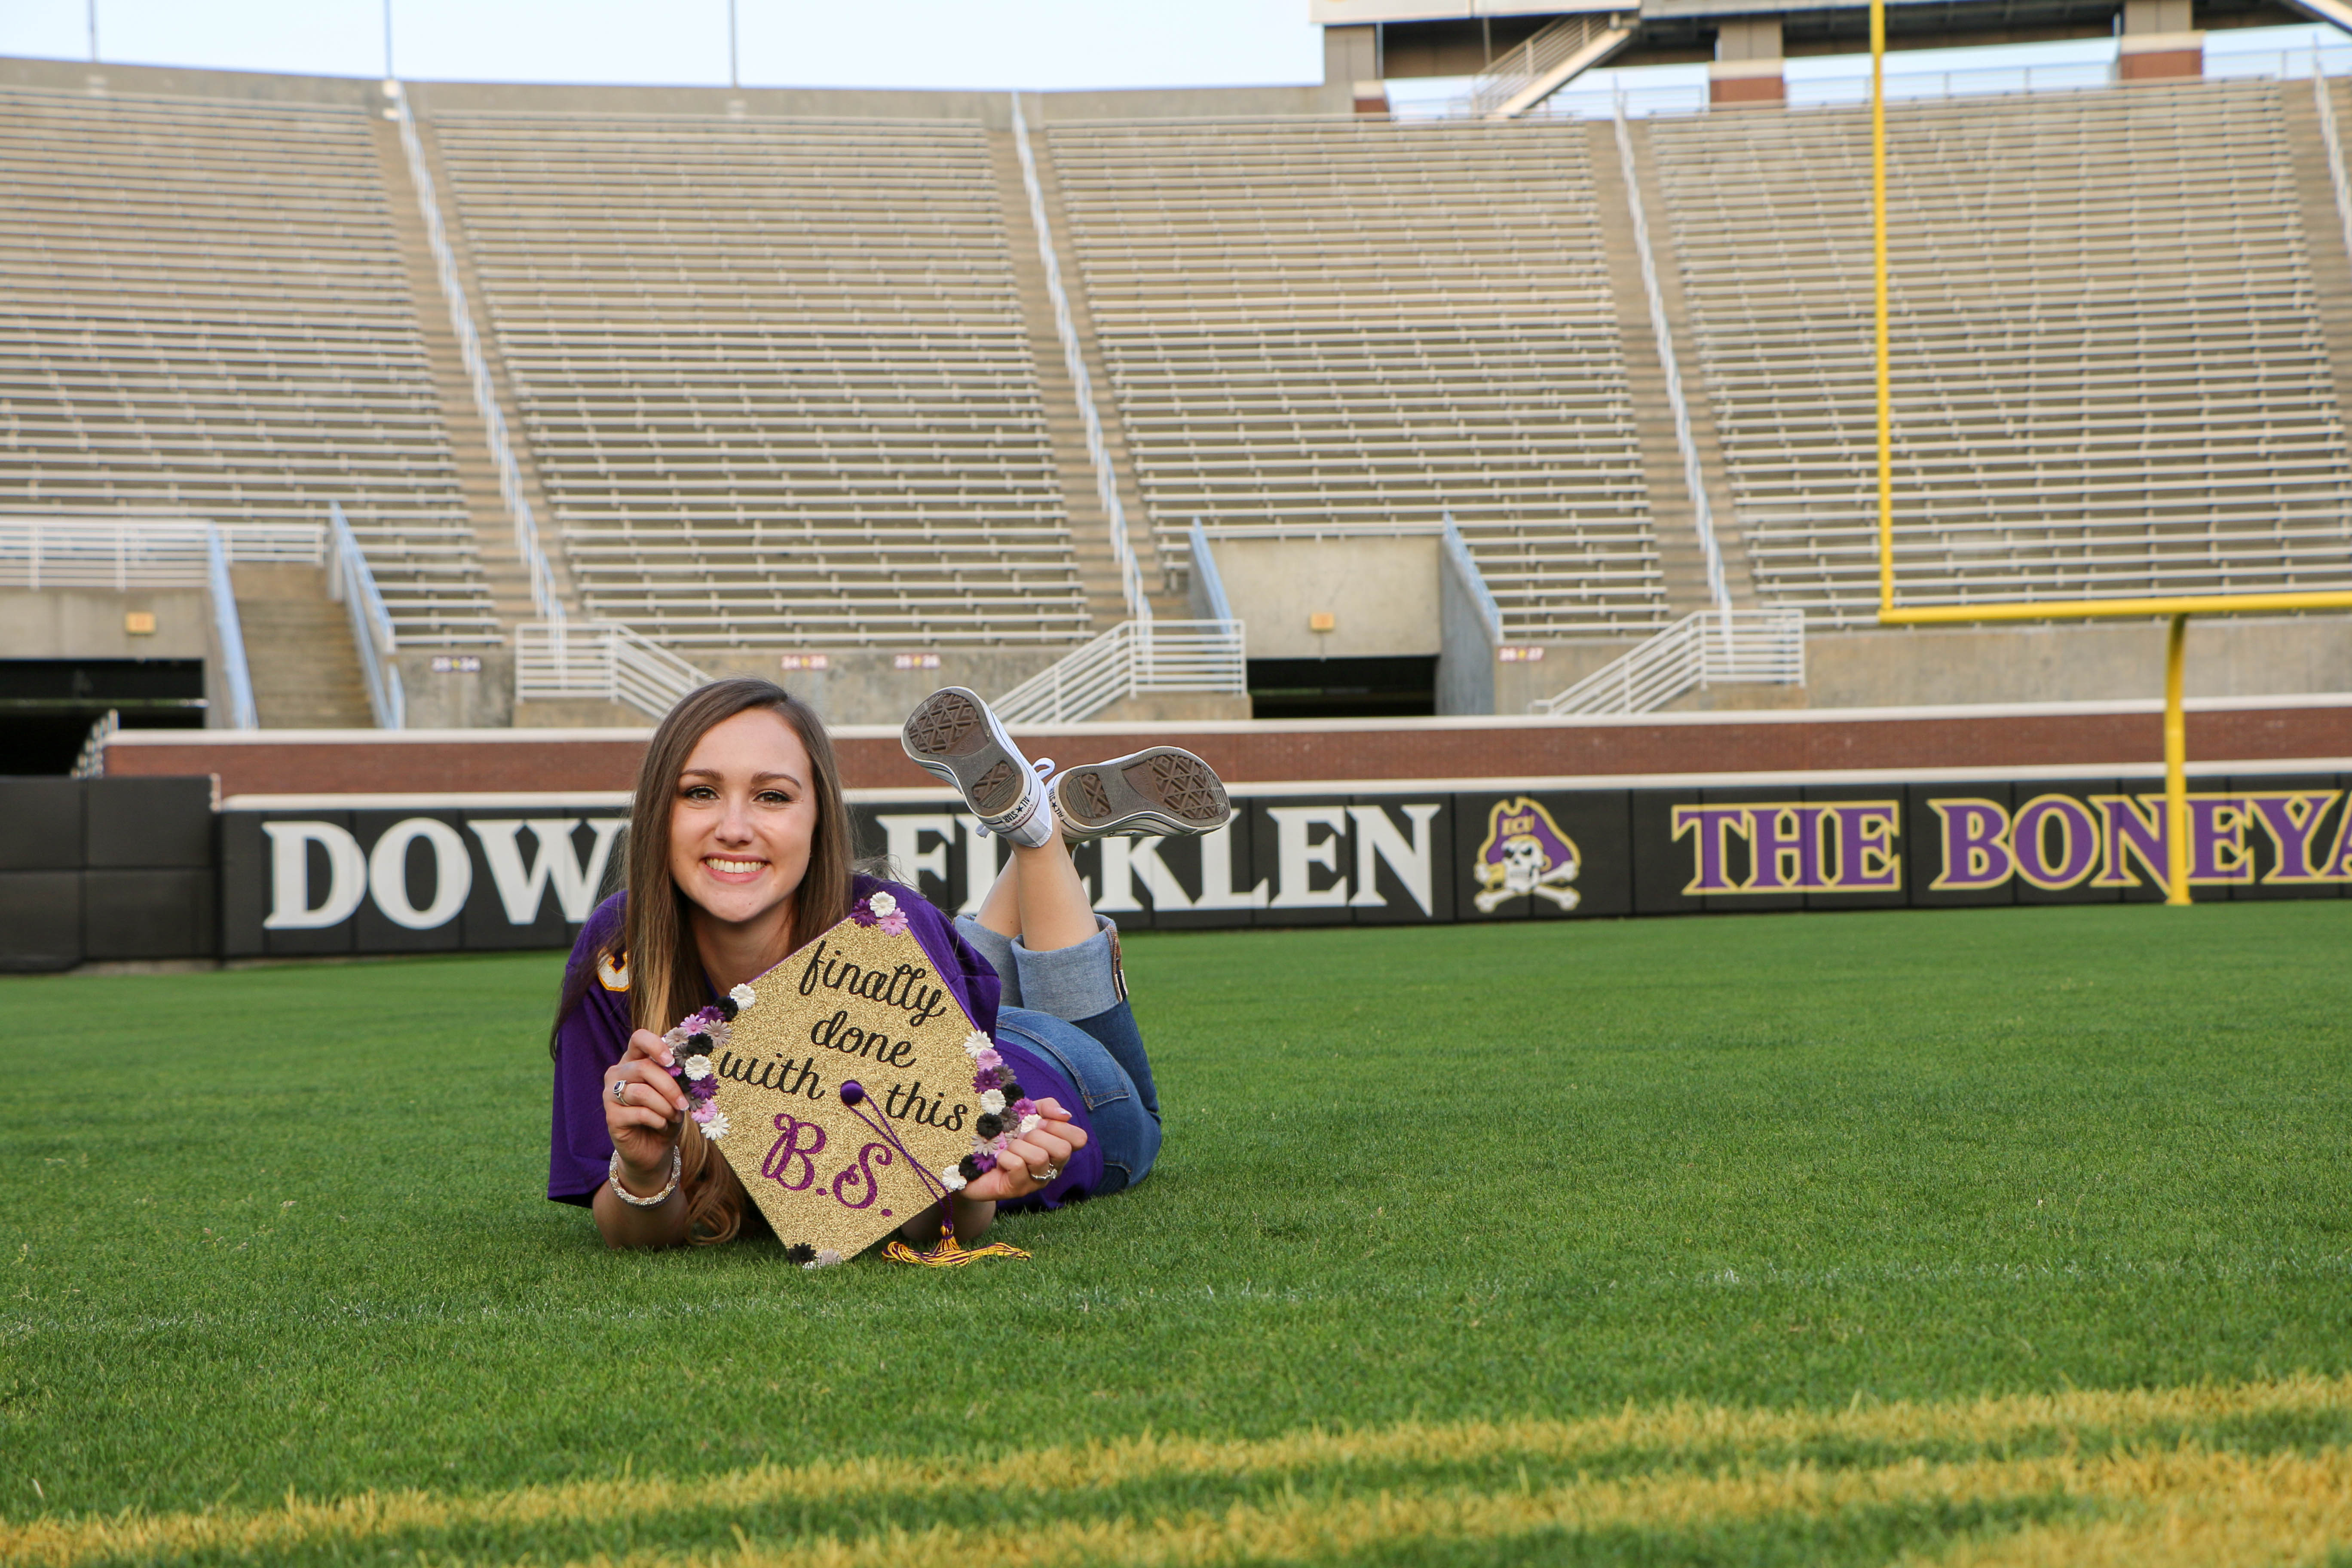 East Carolina University Marketing Graduate, Candace Herrell, at Dowdy Ficklen Stadium, The Boneyard